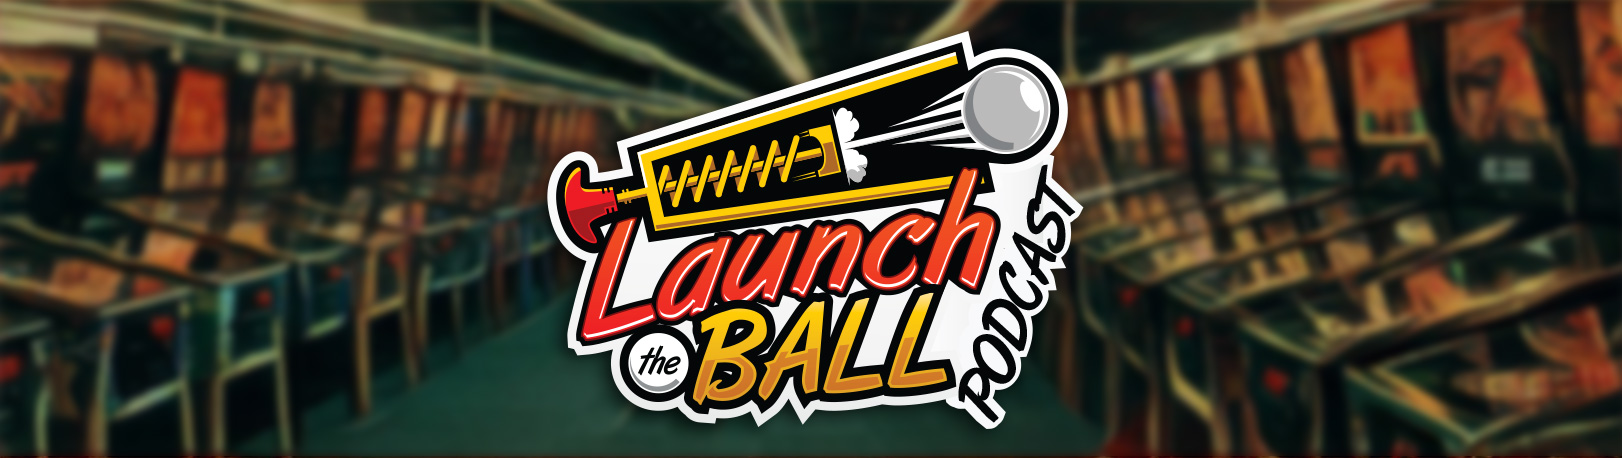 Launch the Ball Podcast